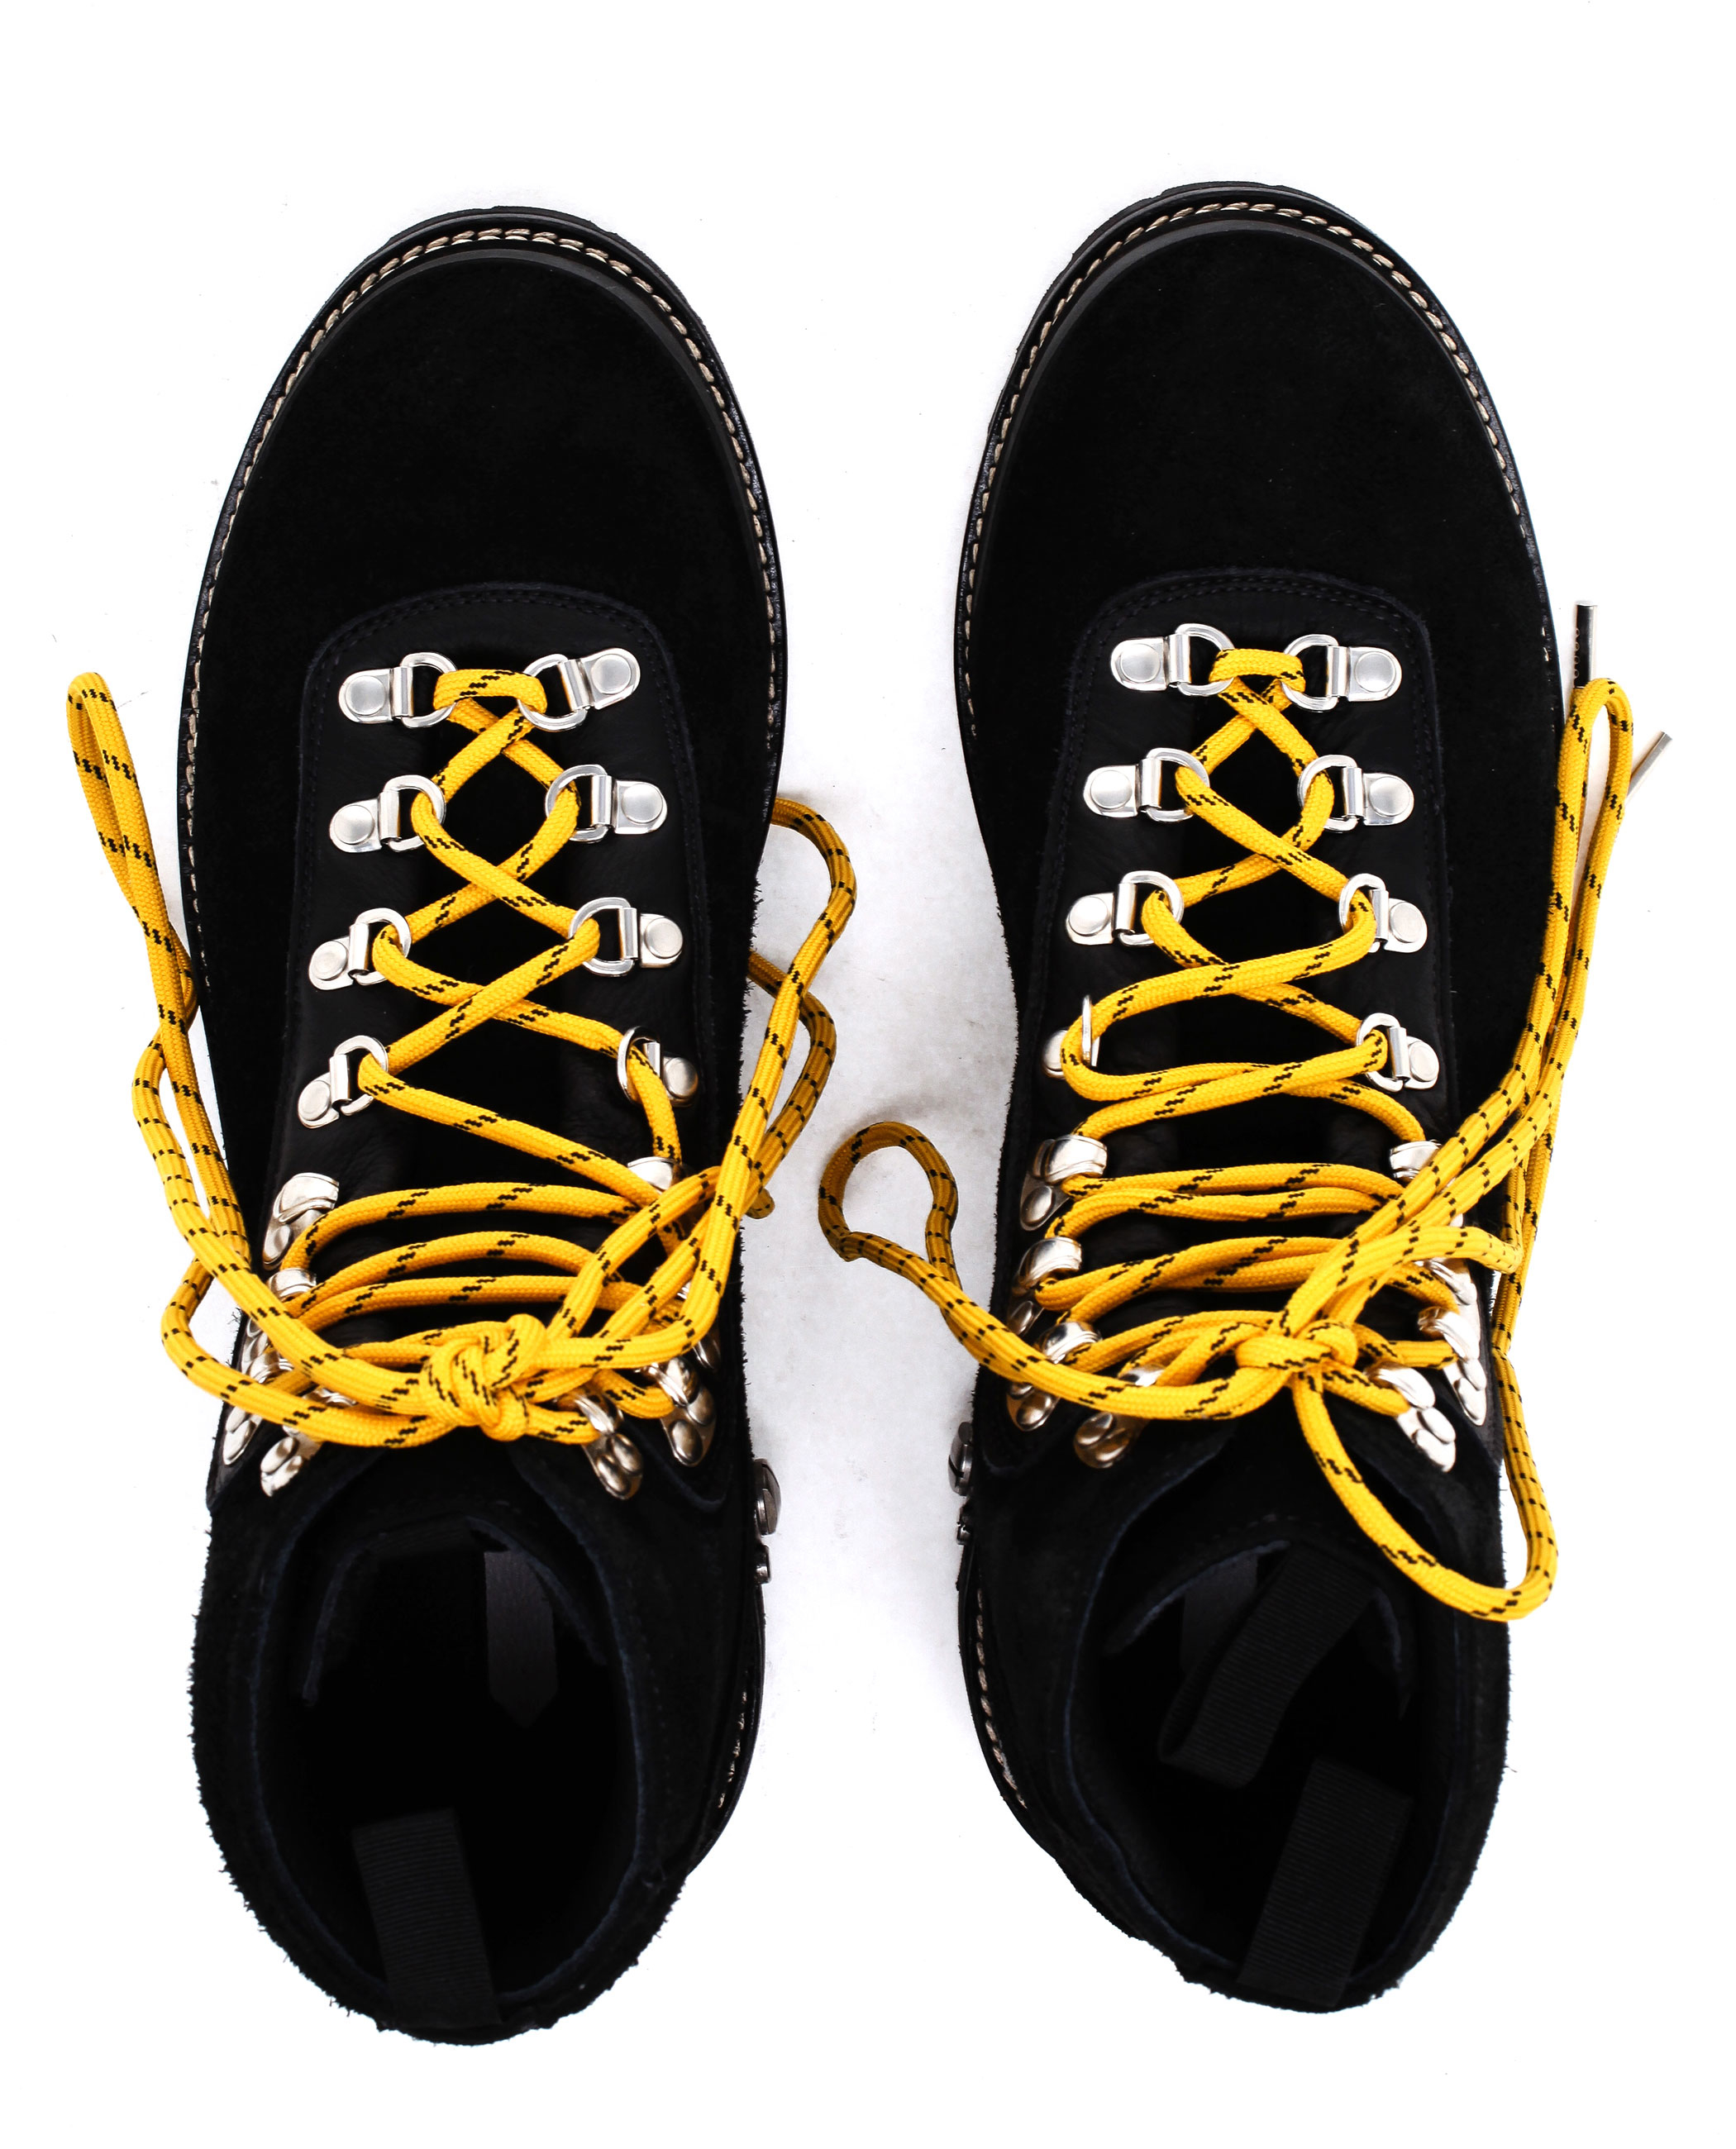 Off,White c/o Virgil Abloh Black Suede Hiking Boots